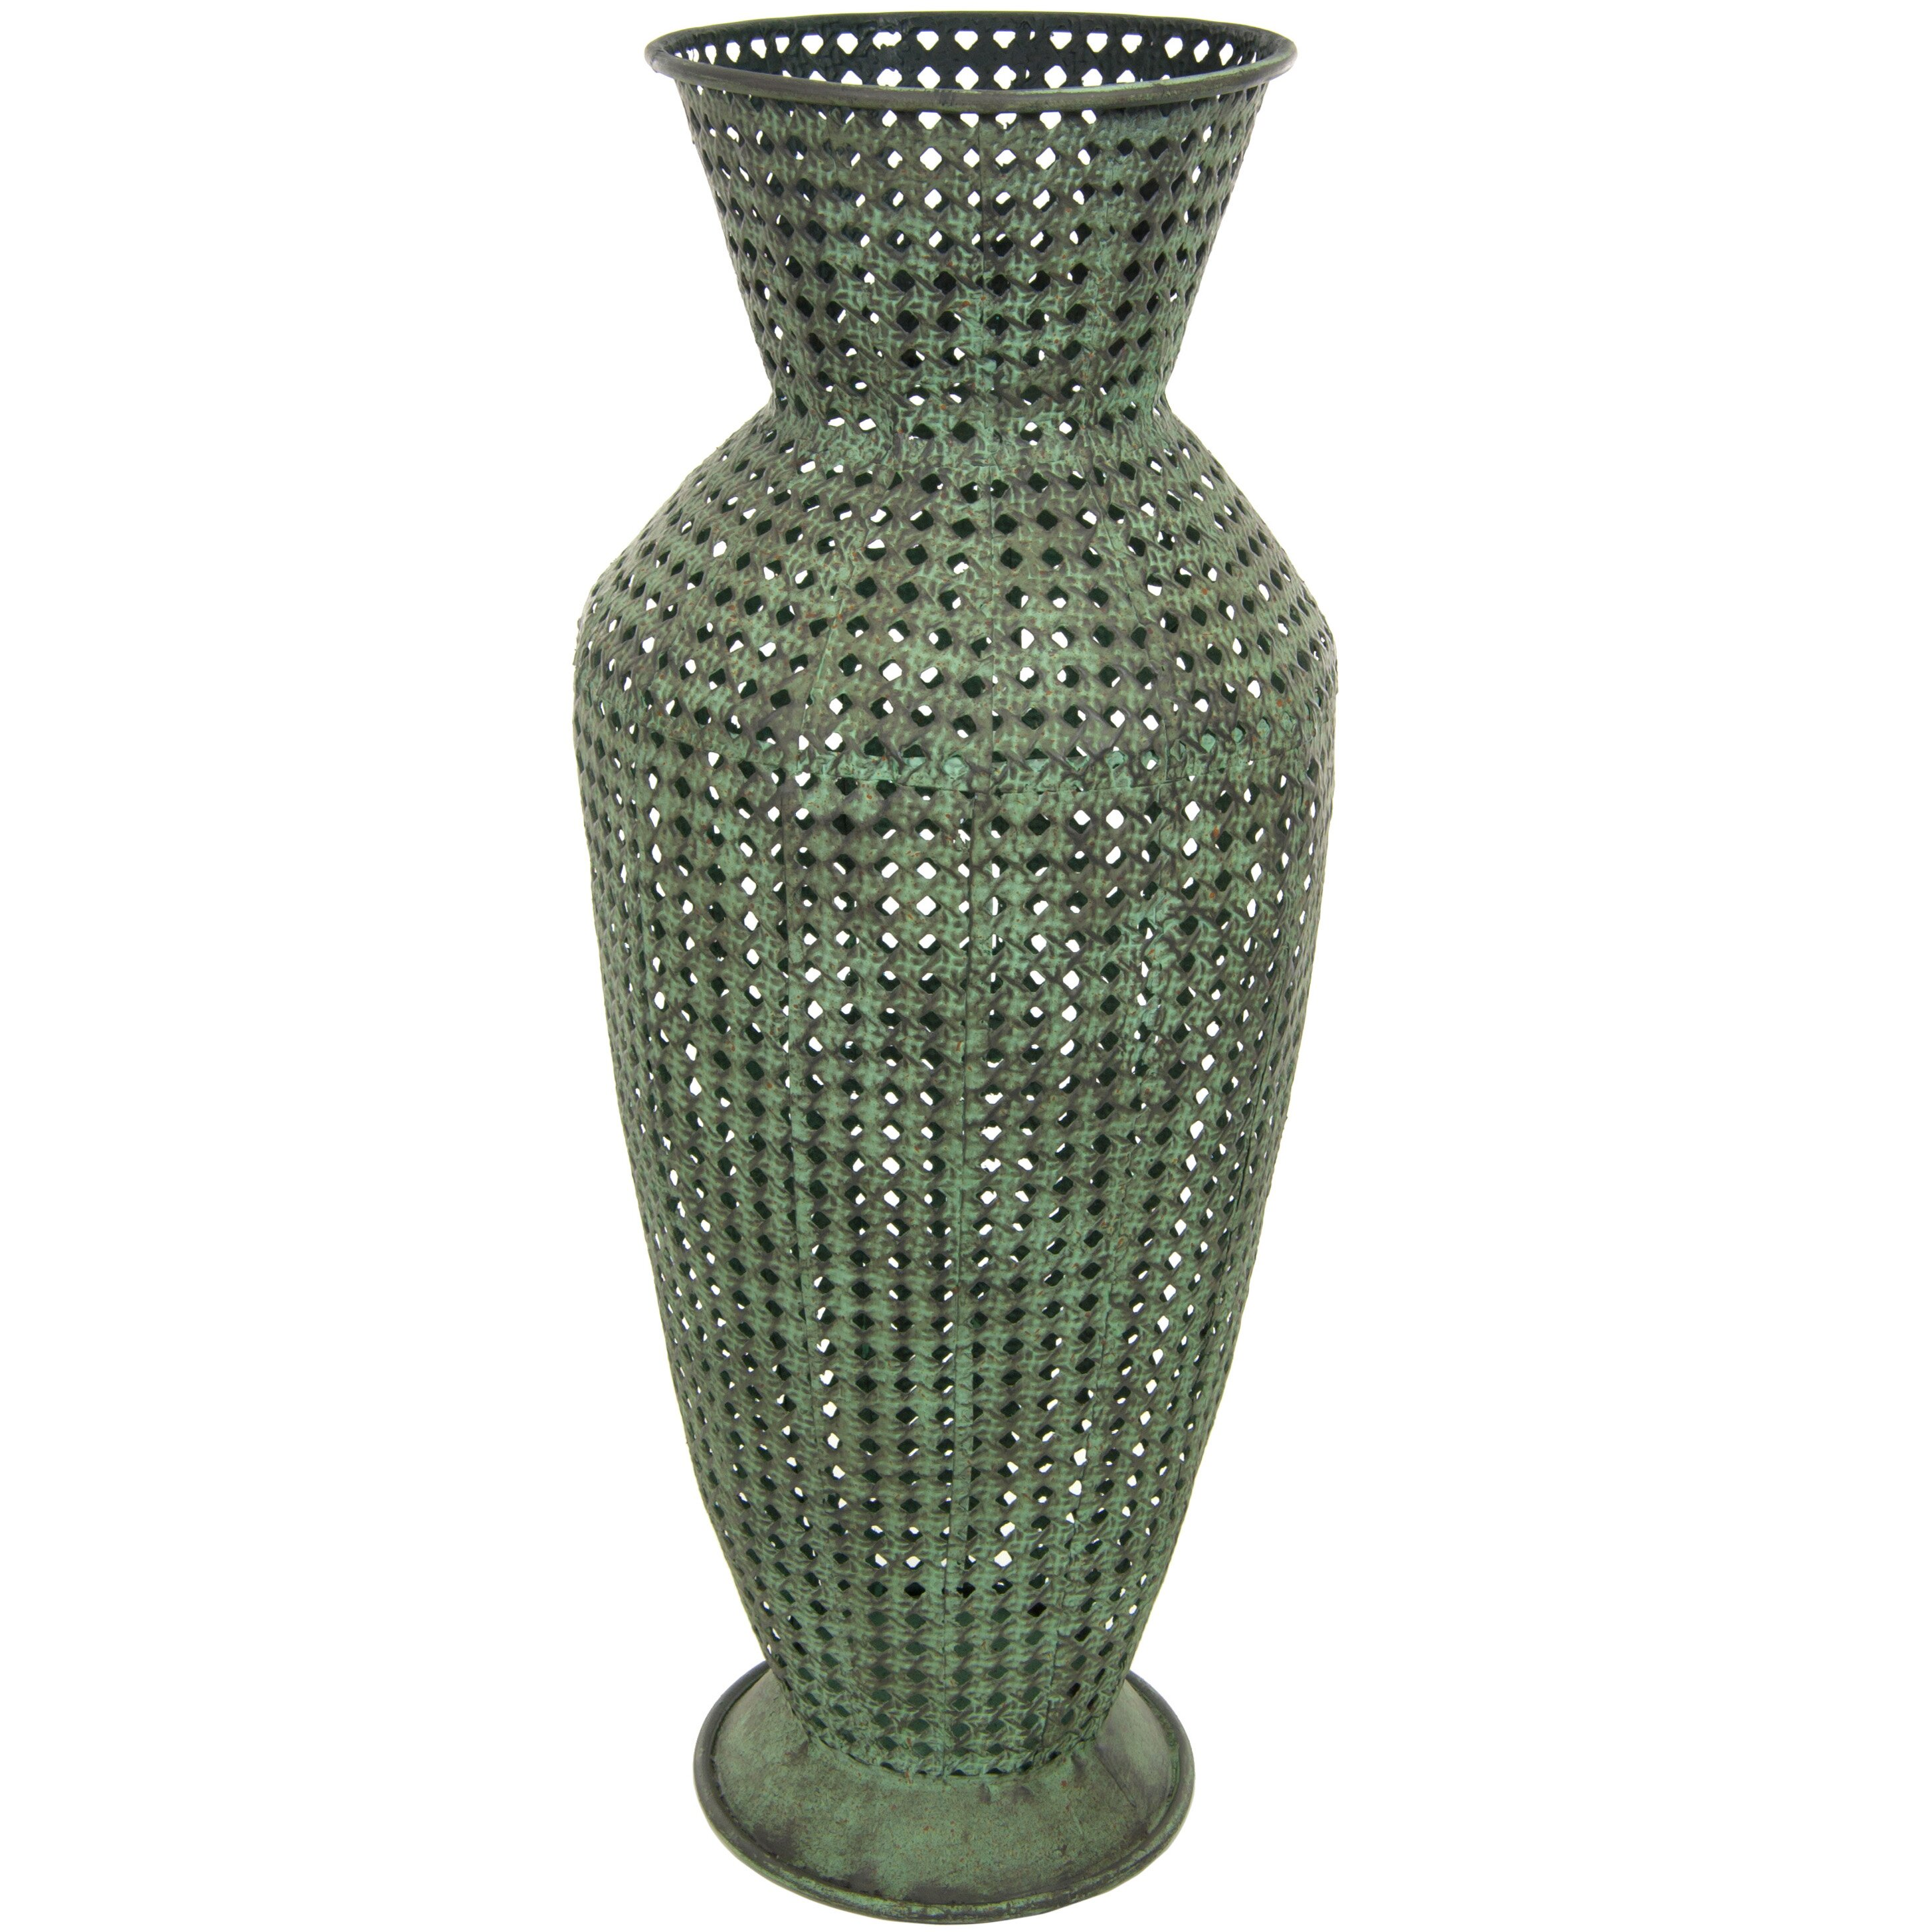 Oriental furniture vase reviews for Oriental vase and furniture